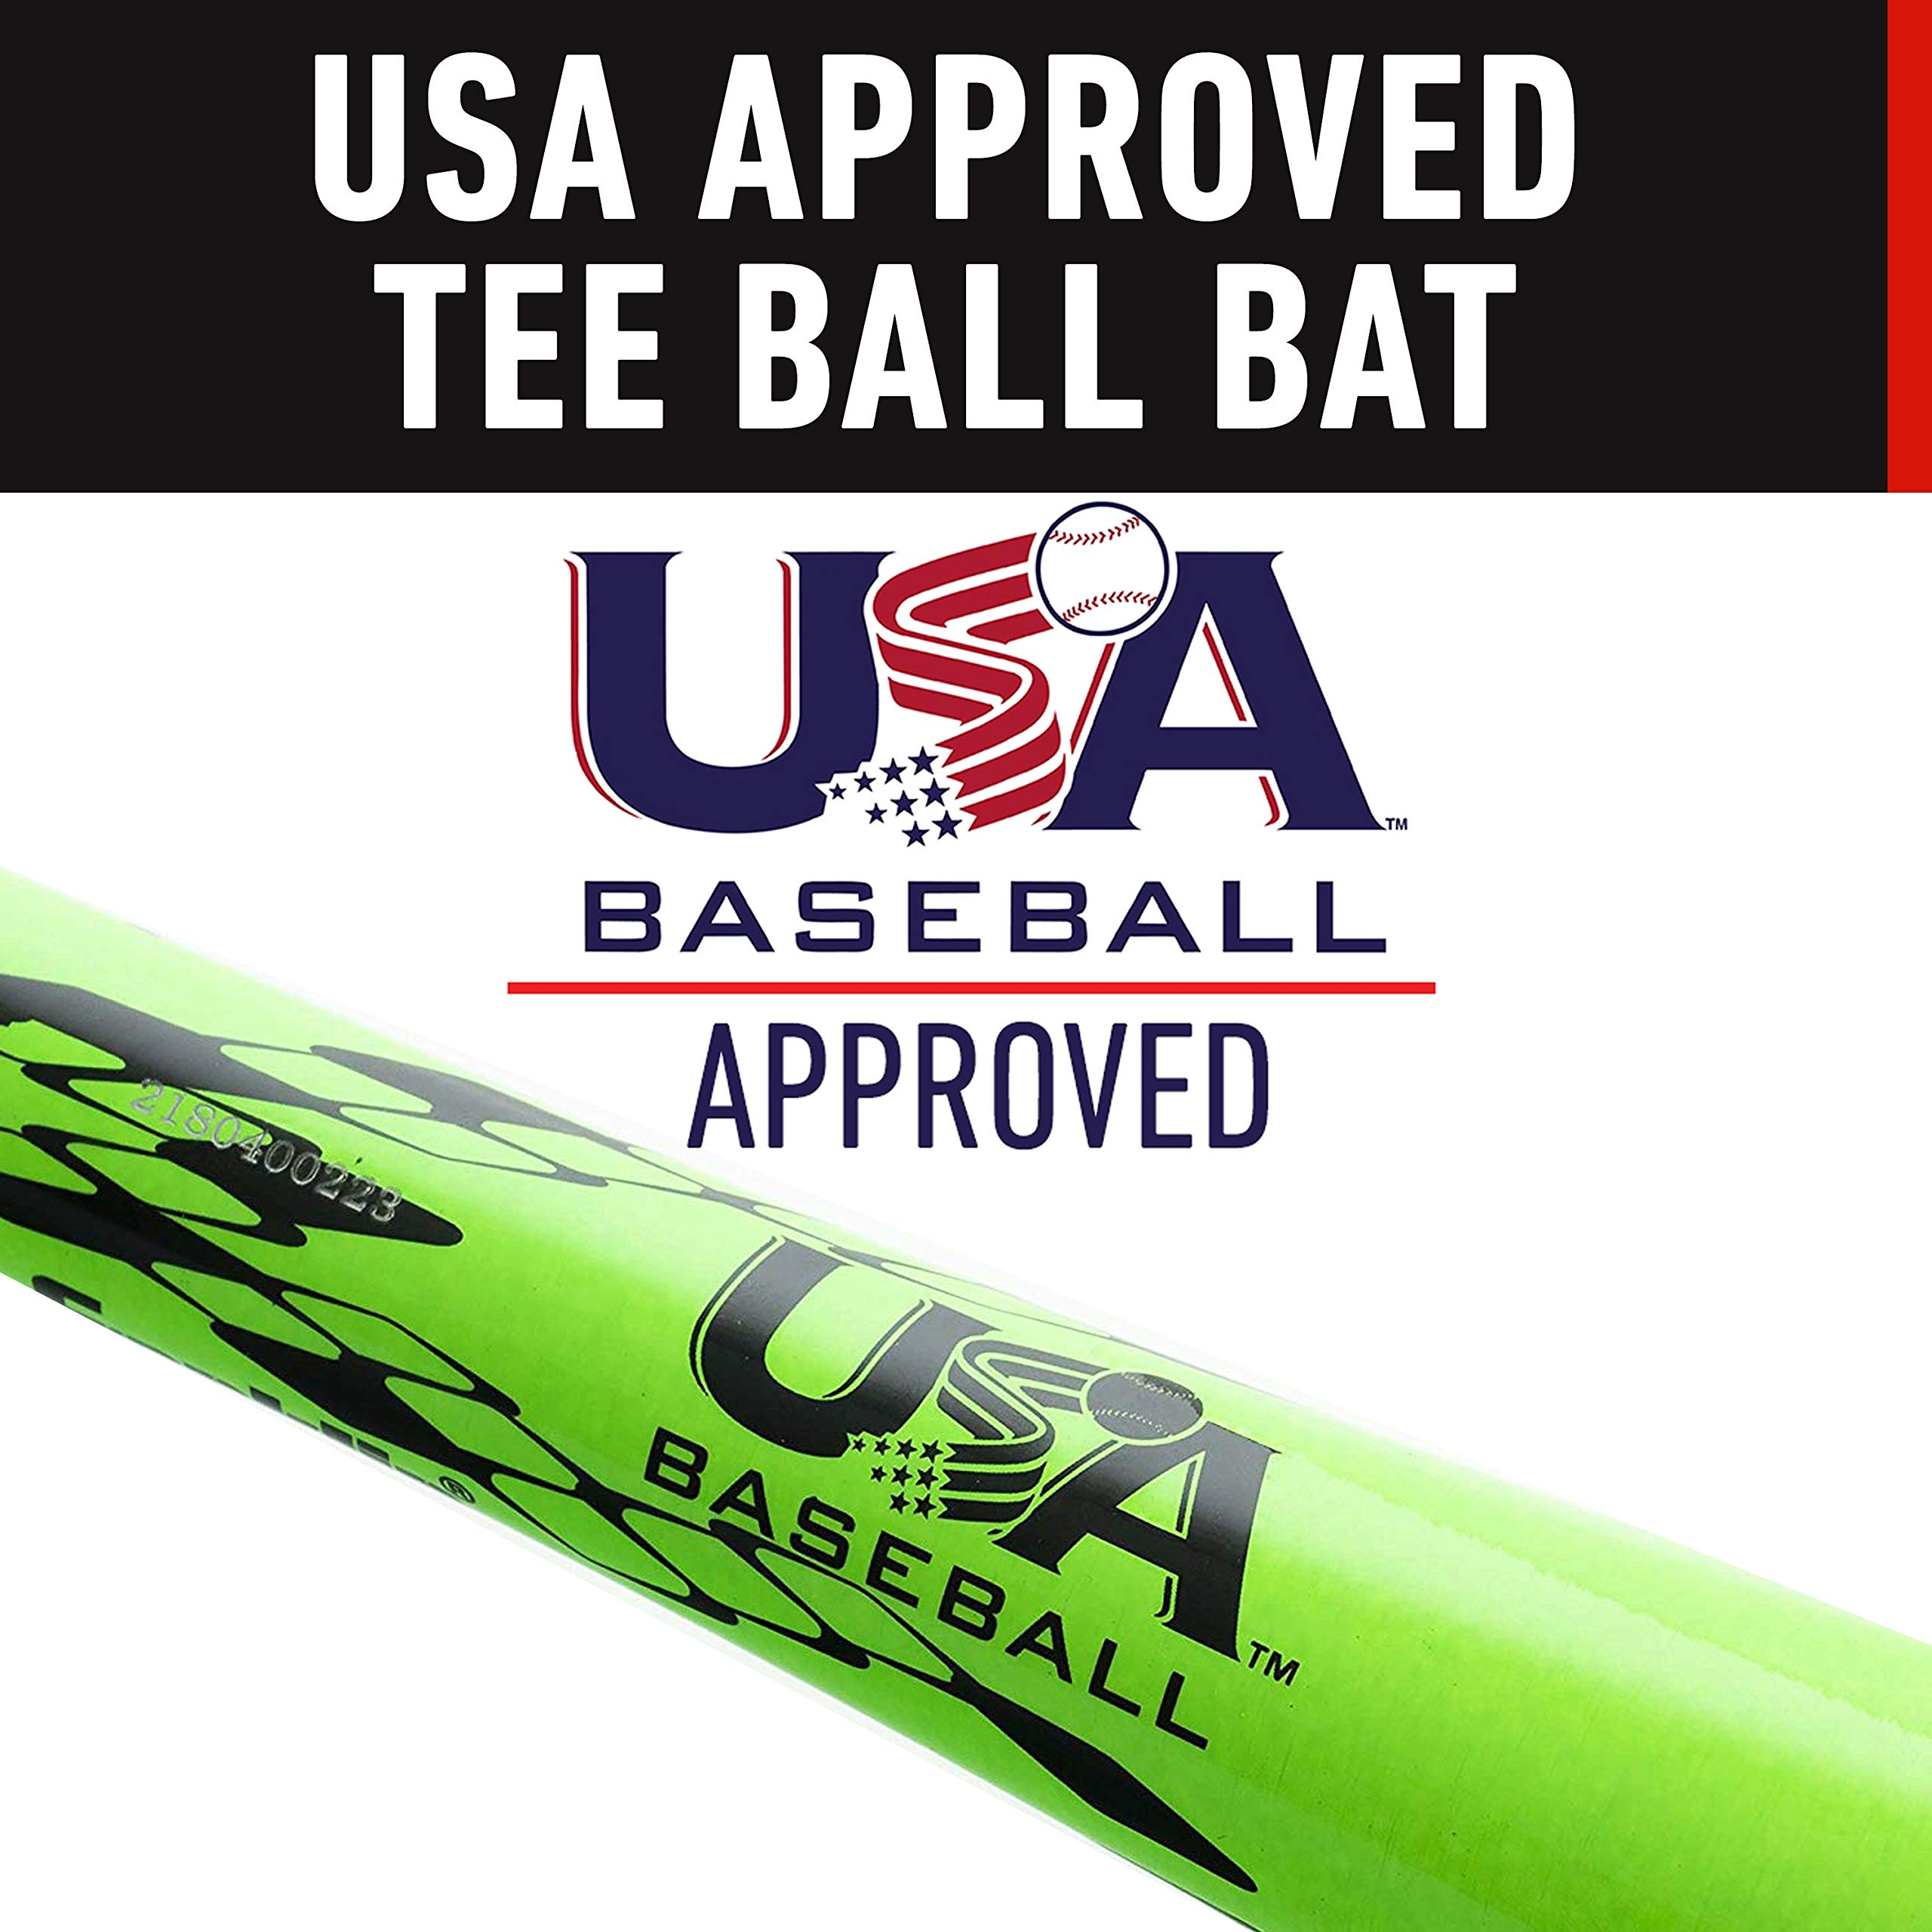 Franklin Sports Venom 1000 Official Teeball Bat - 26'' (-10) - Perfect for Youth Baseball and Teeball by Franklin Sports (Image #3)